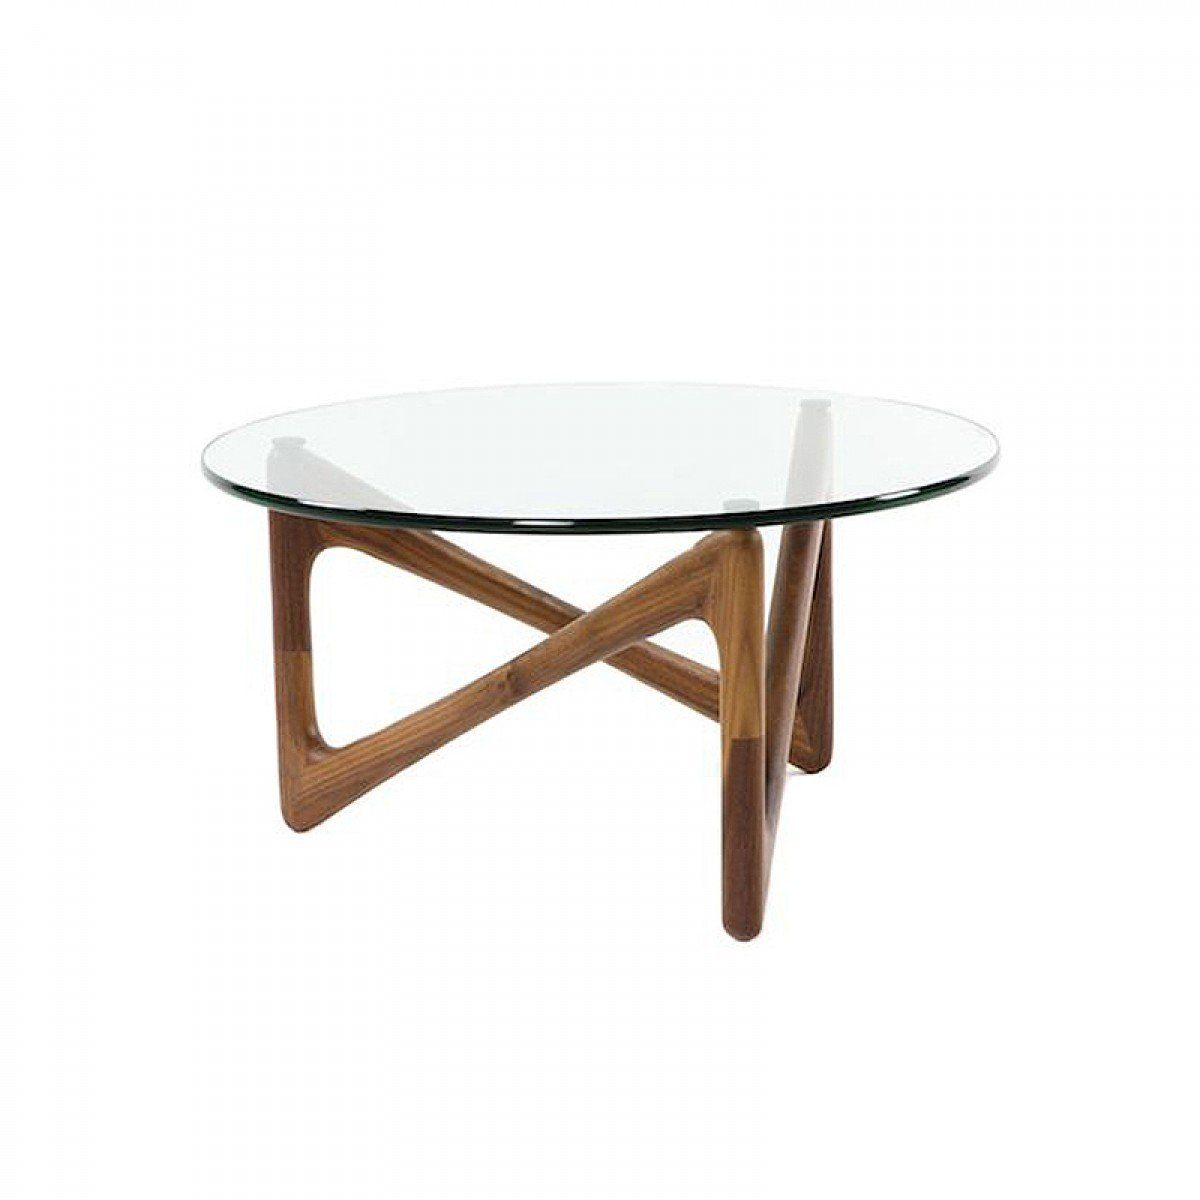 Buy Modern Coffee Tables Online Or Visit Our Showrooms To Get